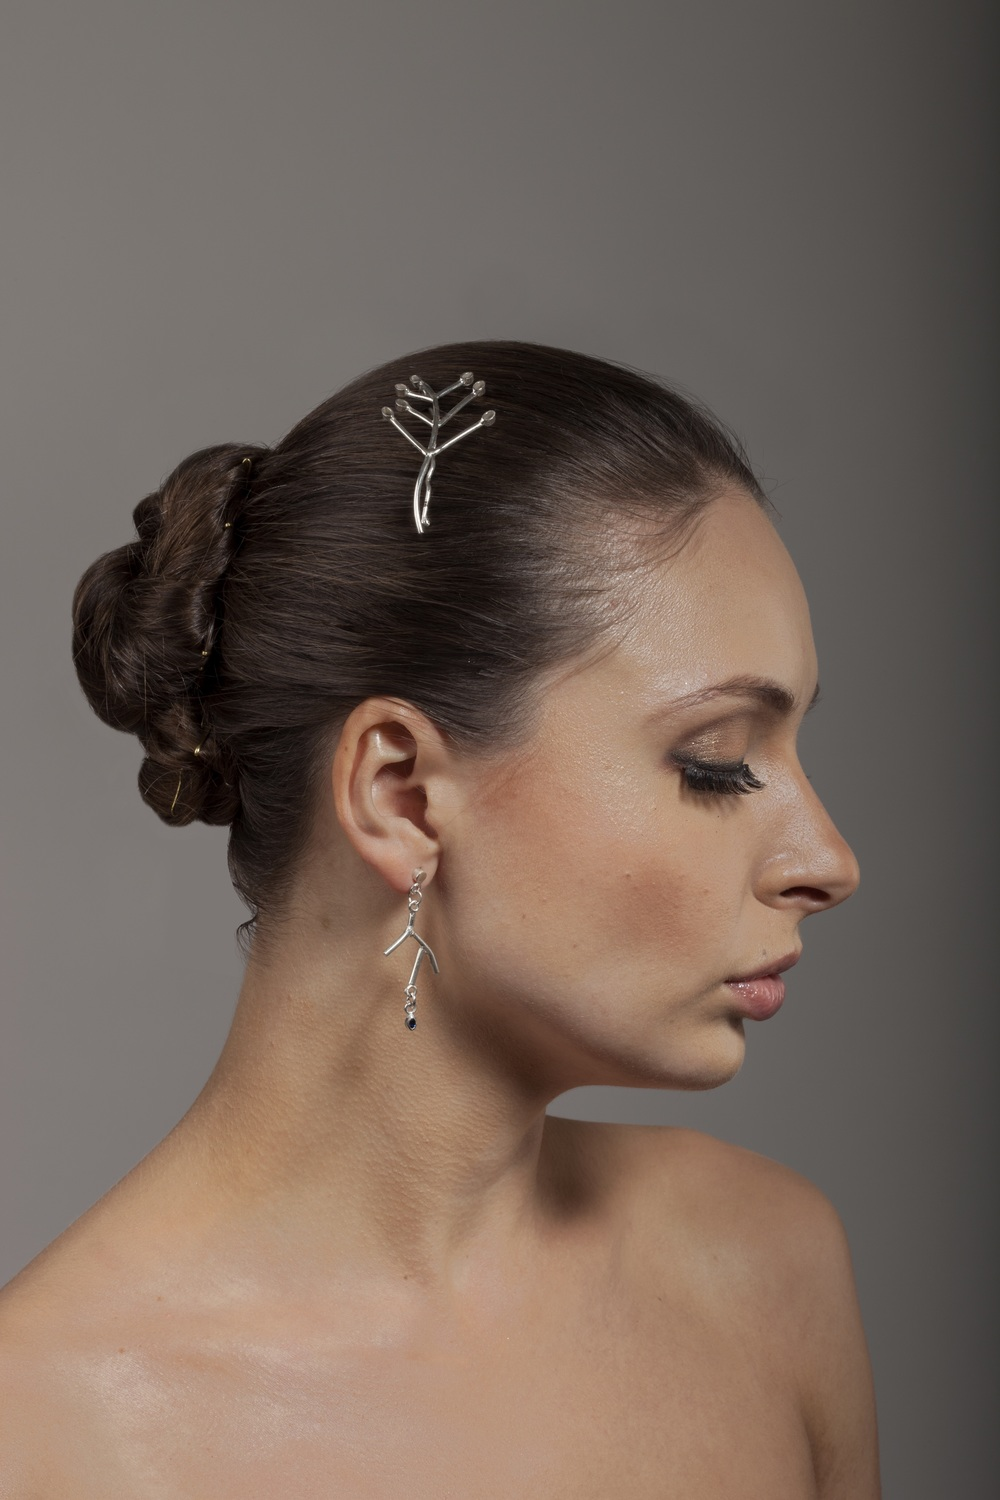 Twig earrings and hair slides - Farah Qureshi.